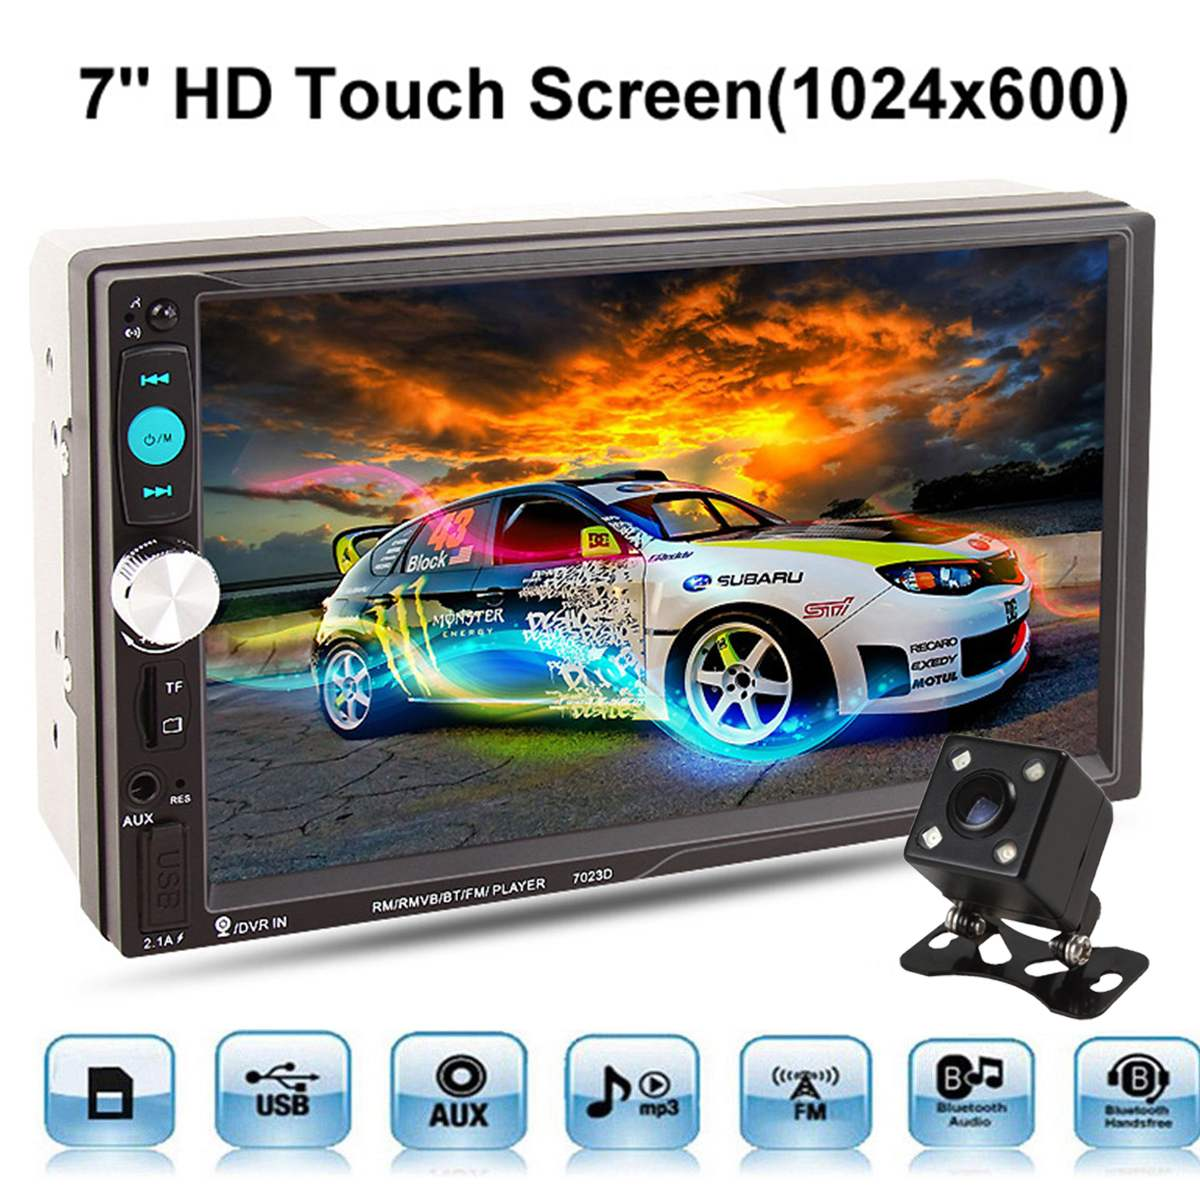 KROAK 7023D 7'' 2 Din Car MP5 Stereo Player Bluetooth Touch Screen FM Rearview Camera AUX 2 din car radio mp5 player universal 7 inch hd bt usb tf fm aux input multimedia radio entertainment with rear view camera